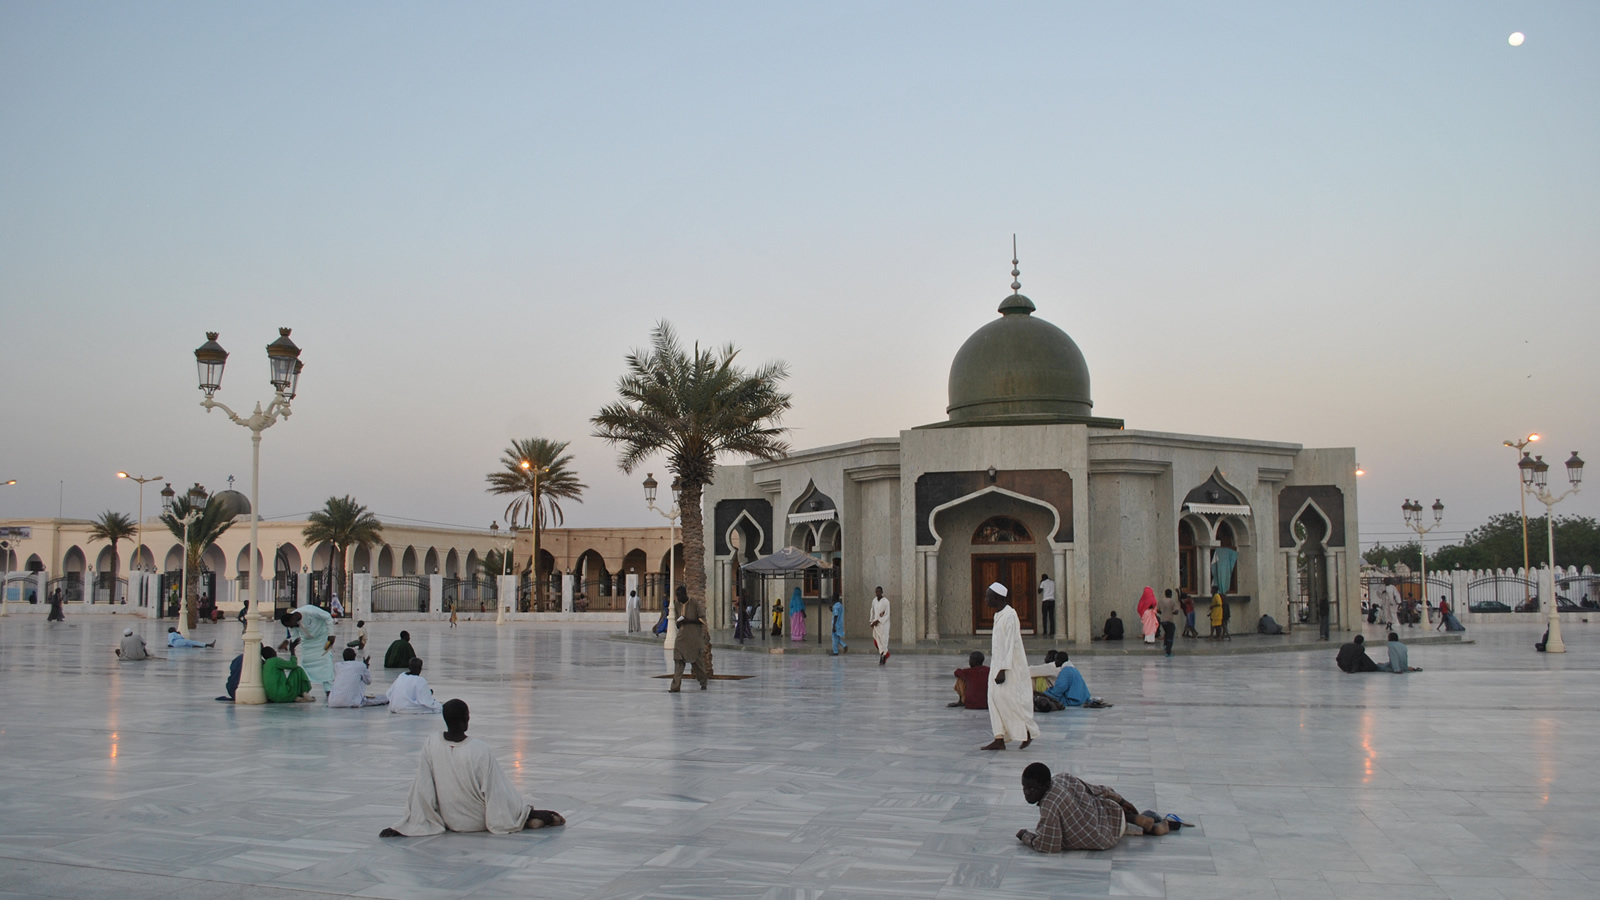 Grand Mosque of Touba in Senegal